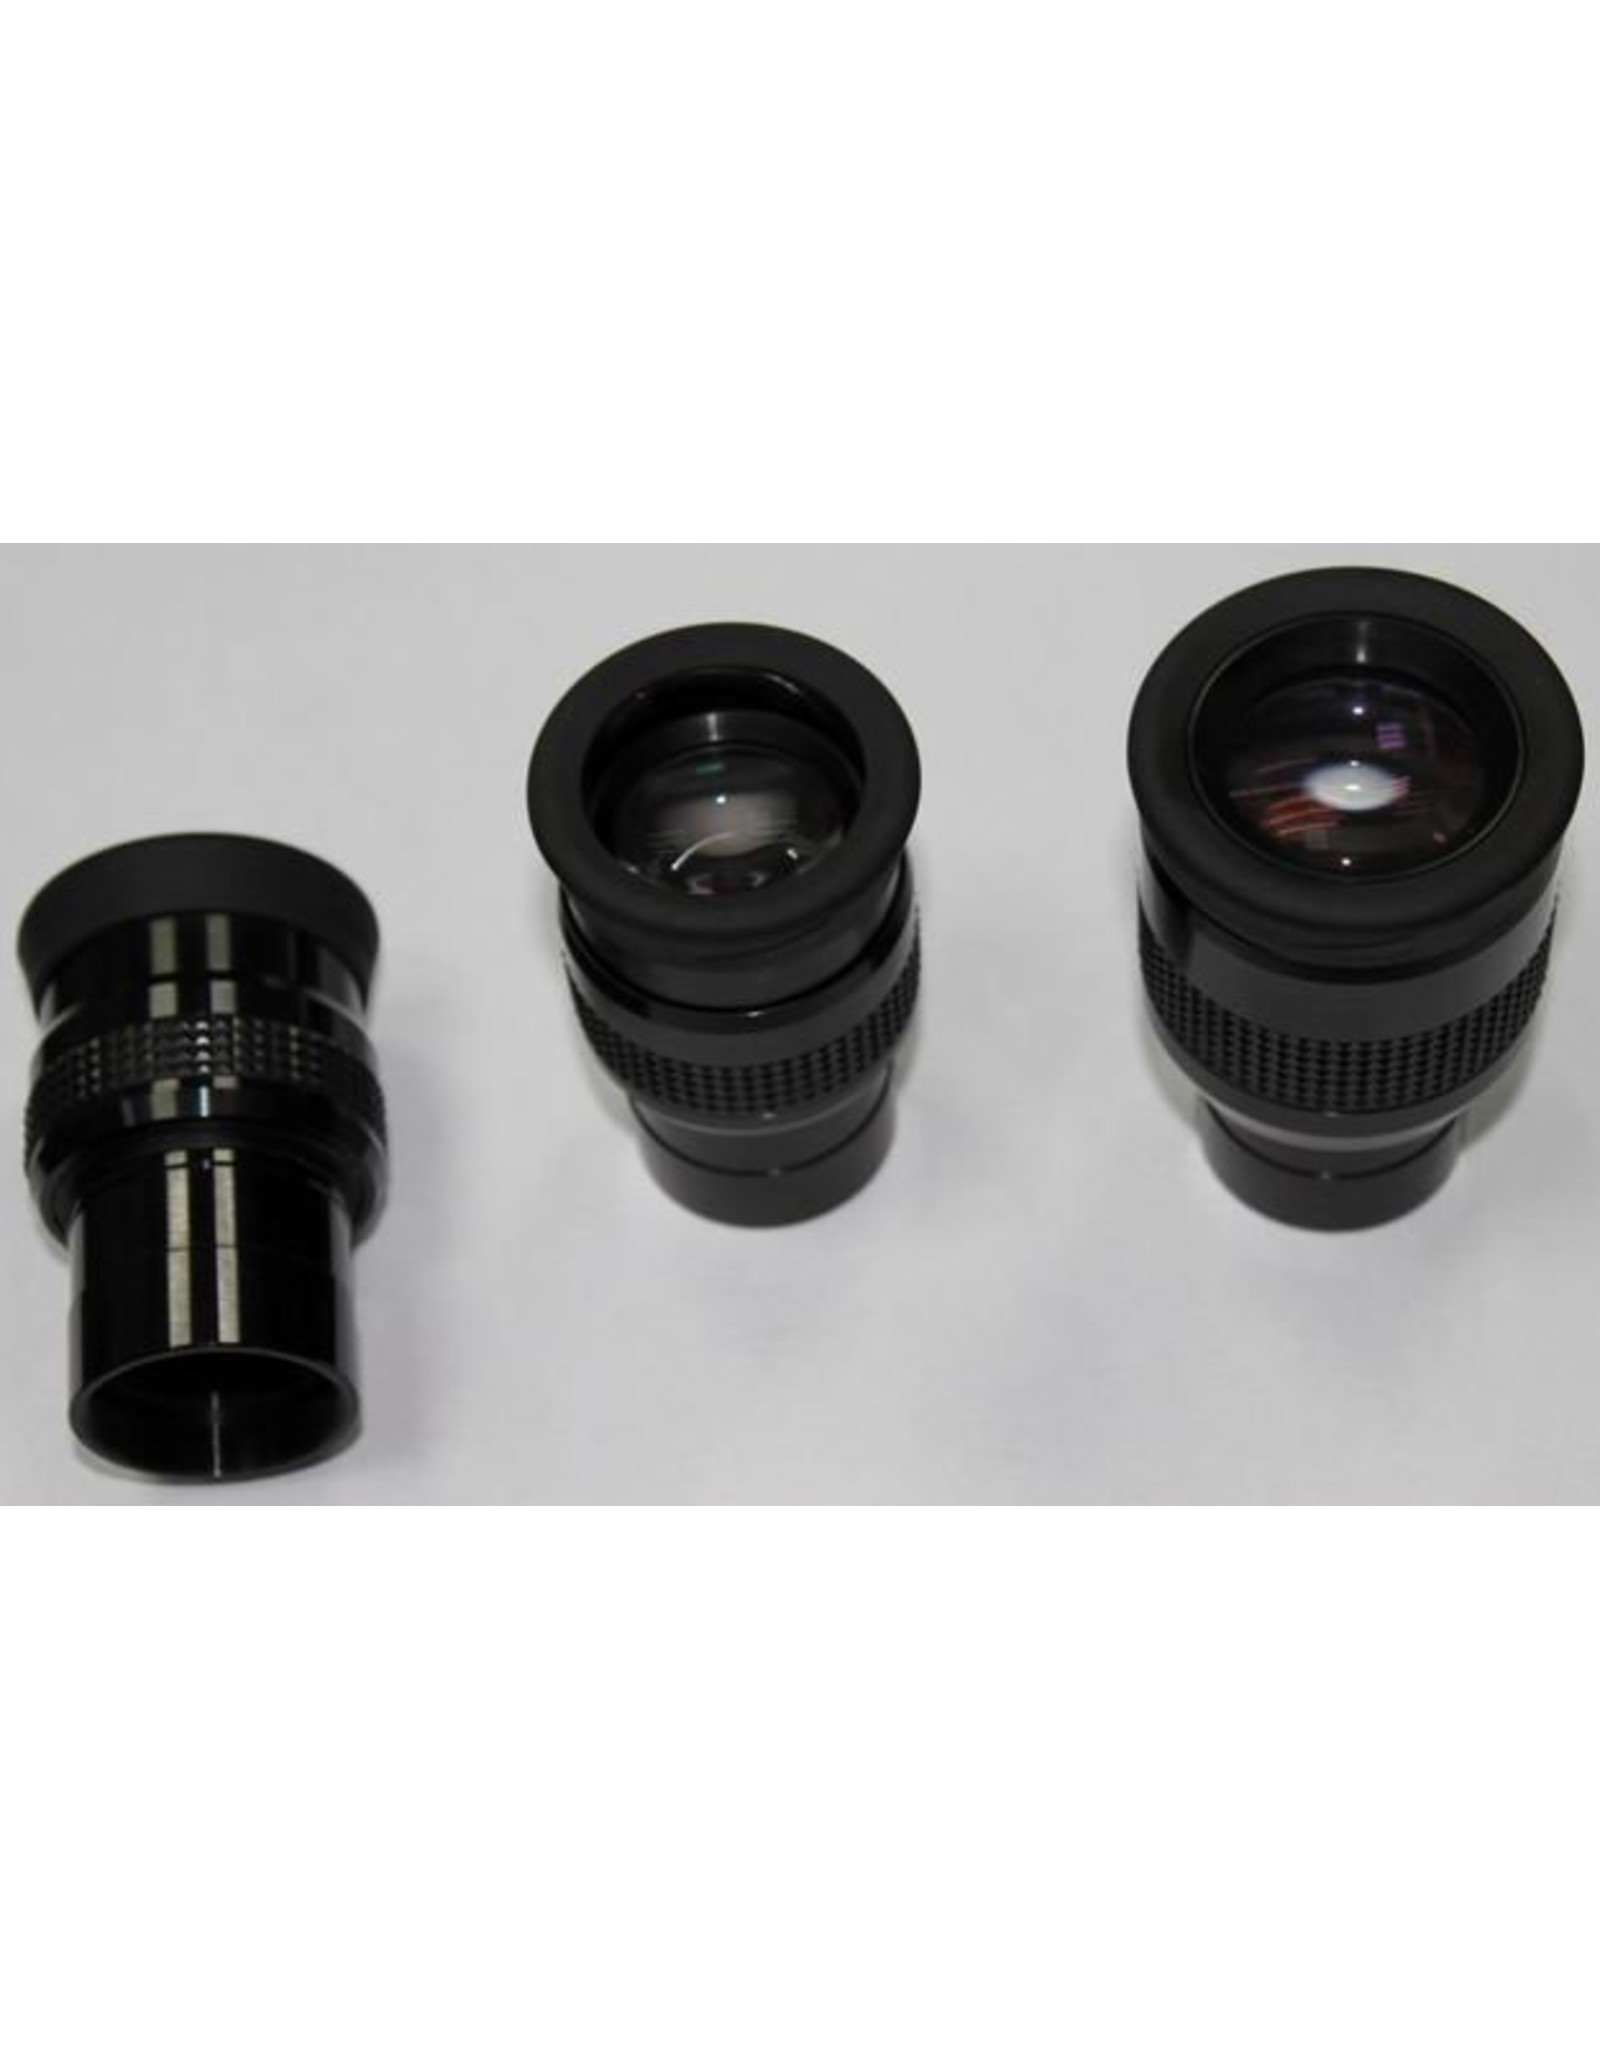 BST BST 8mm Edge On FLAT FIELD Eyepiece